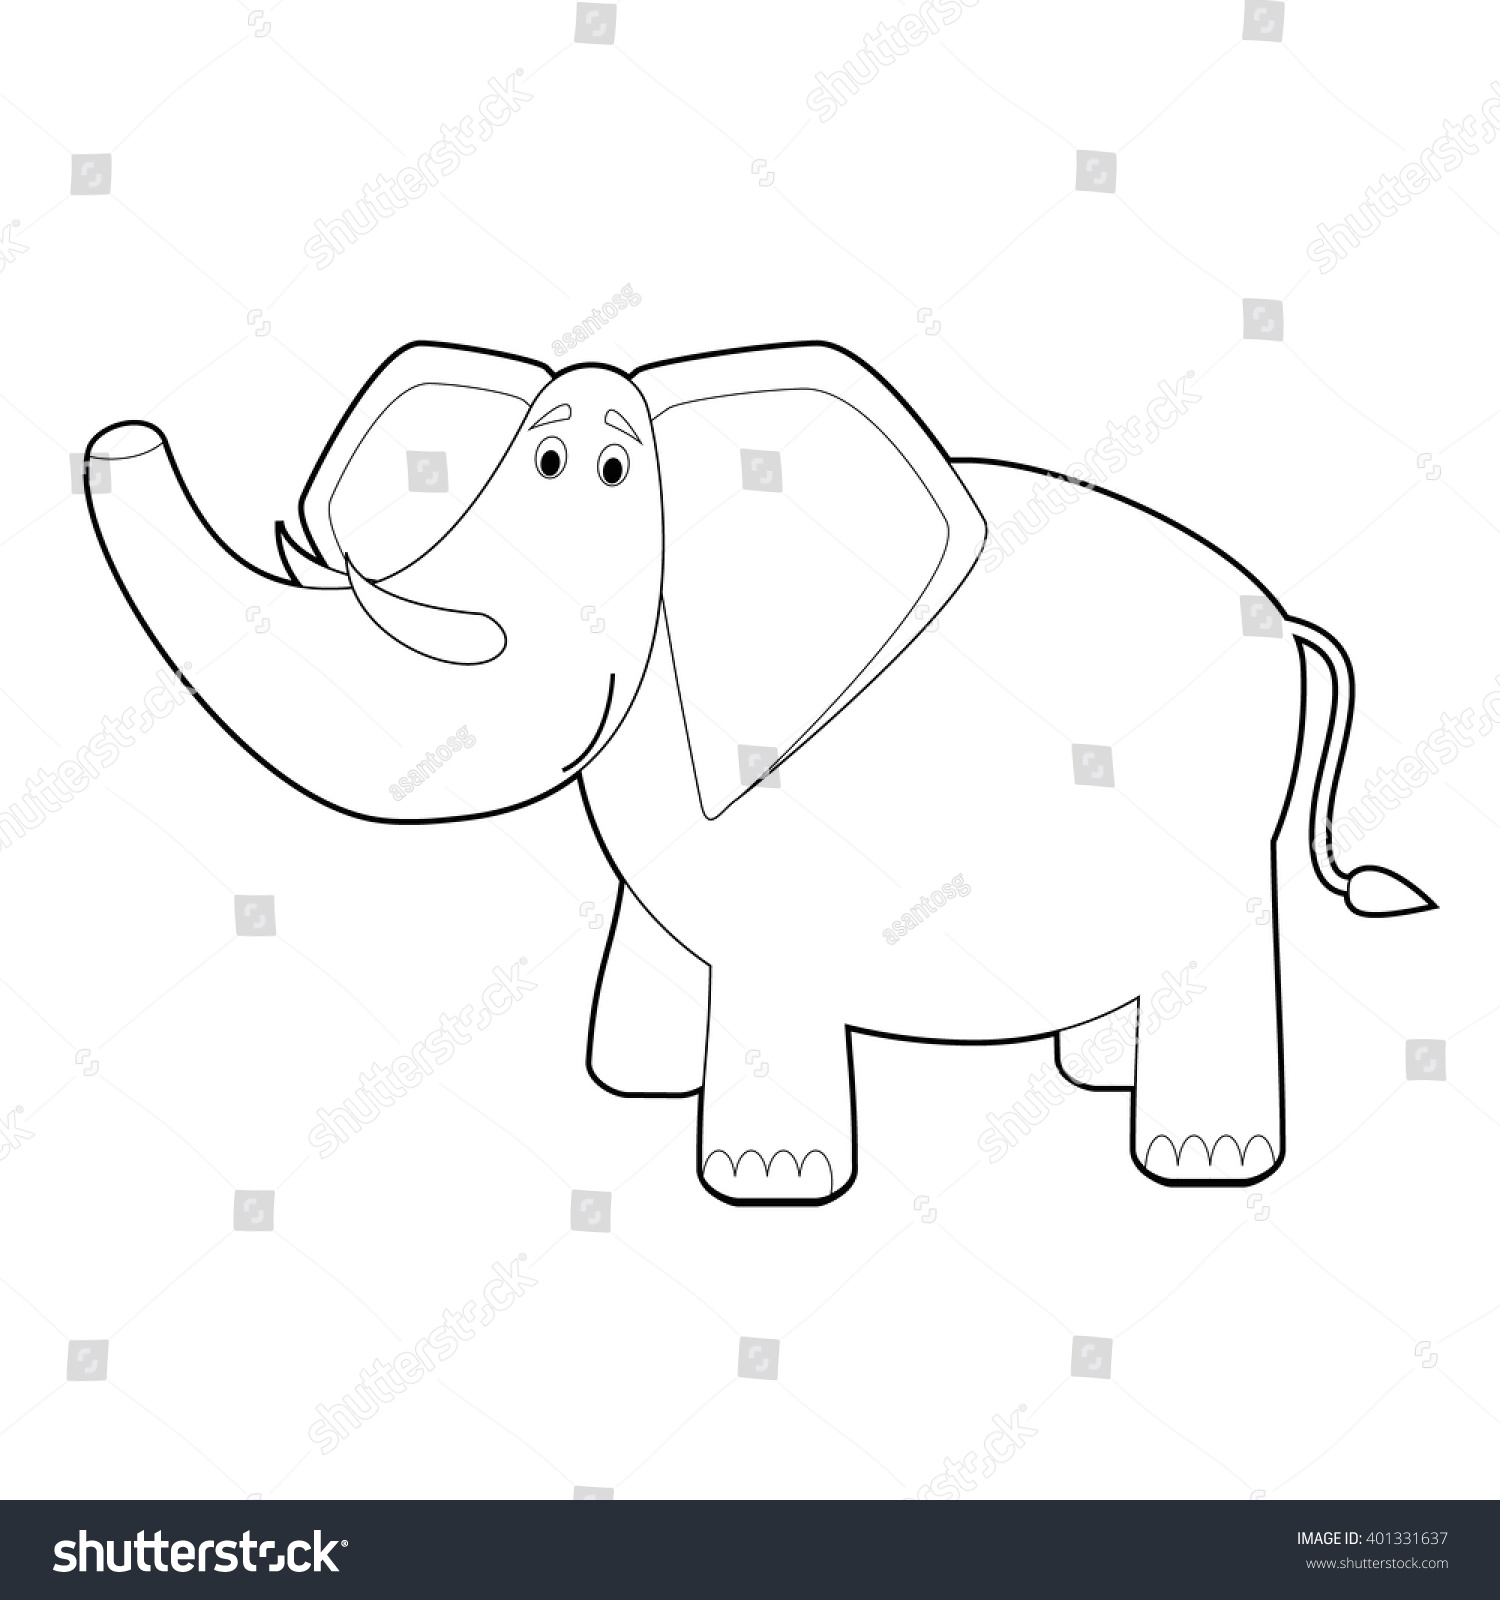 easy coloring drawings animals little kids stock vector 401331637